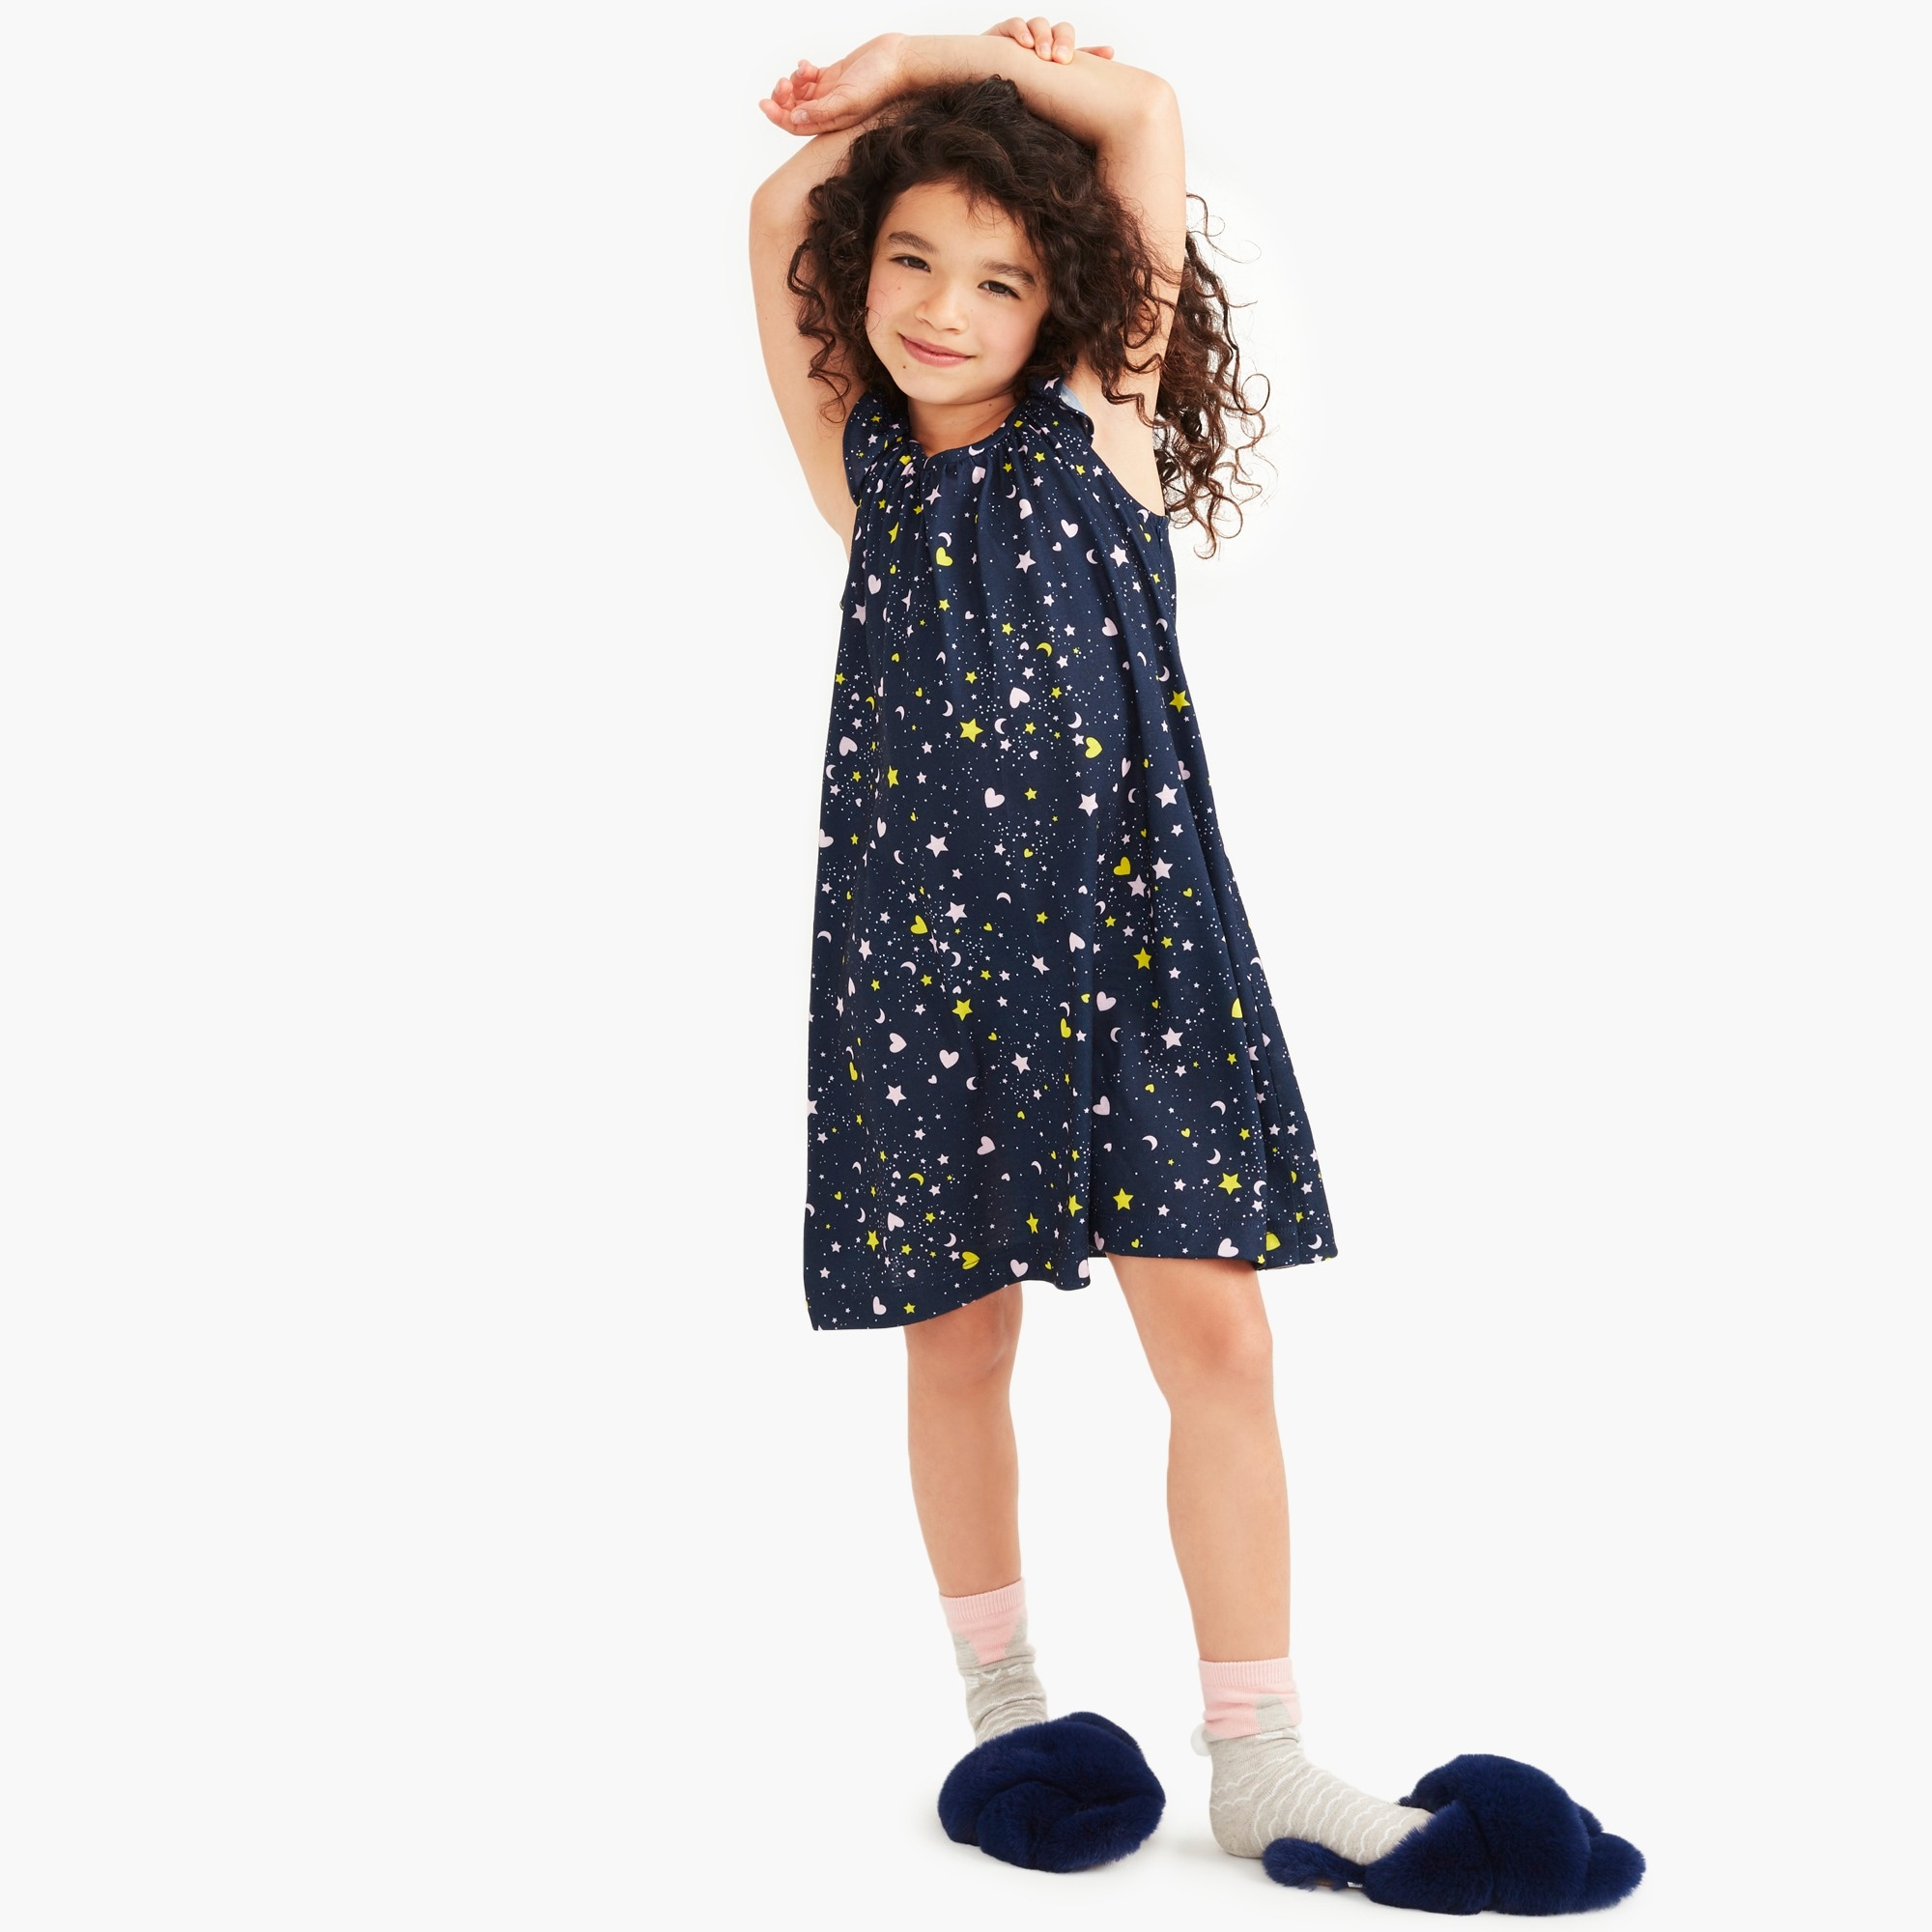 Image 1 for Girls' flutter-sleeve nightgown in hearts and stars